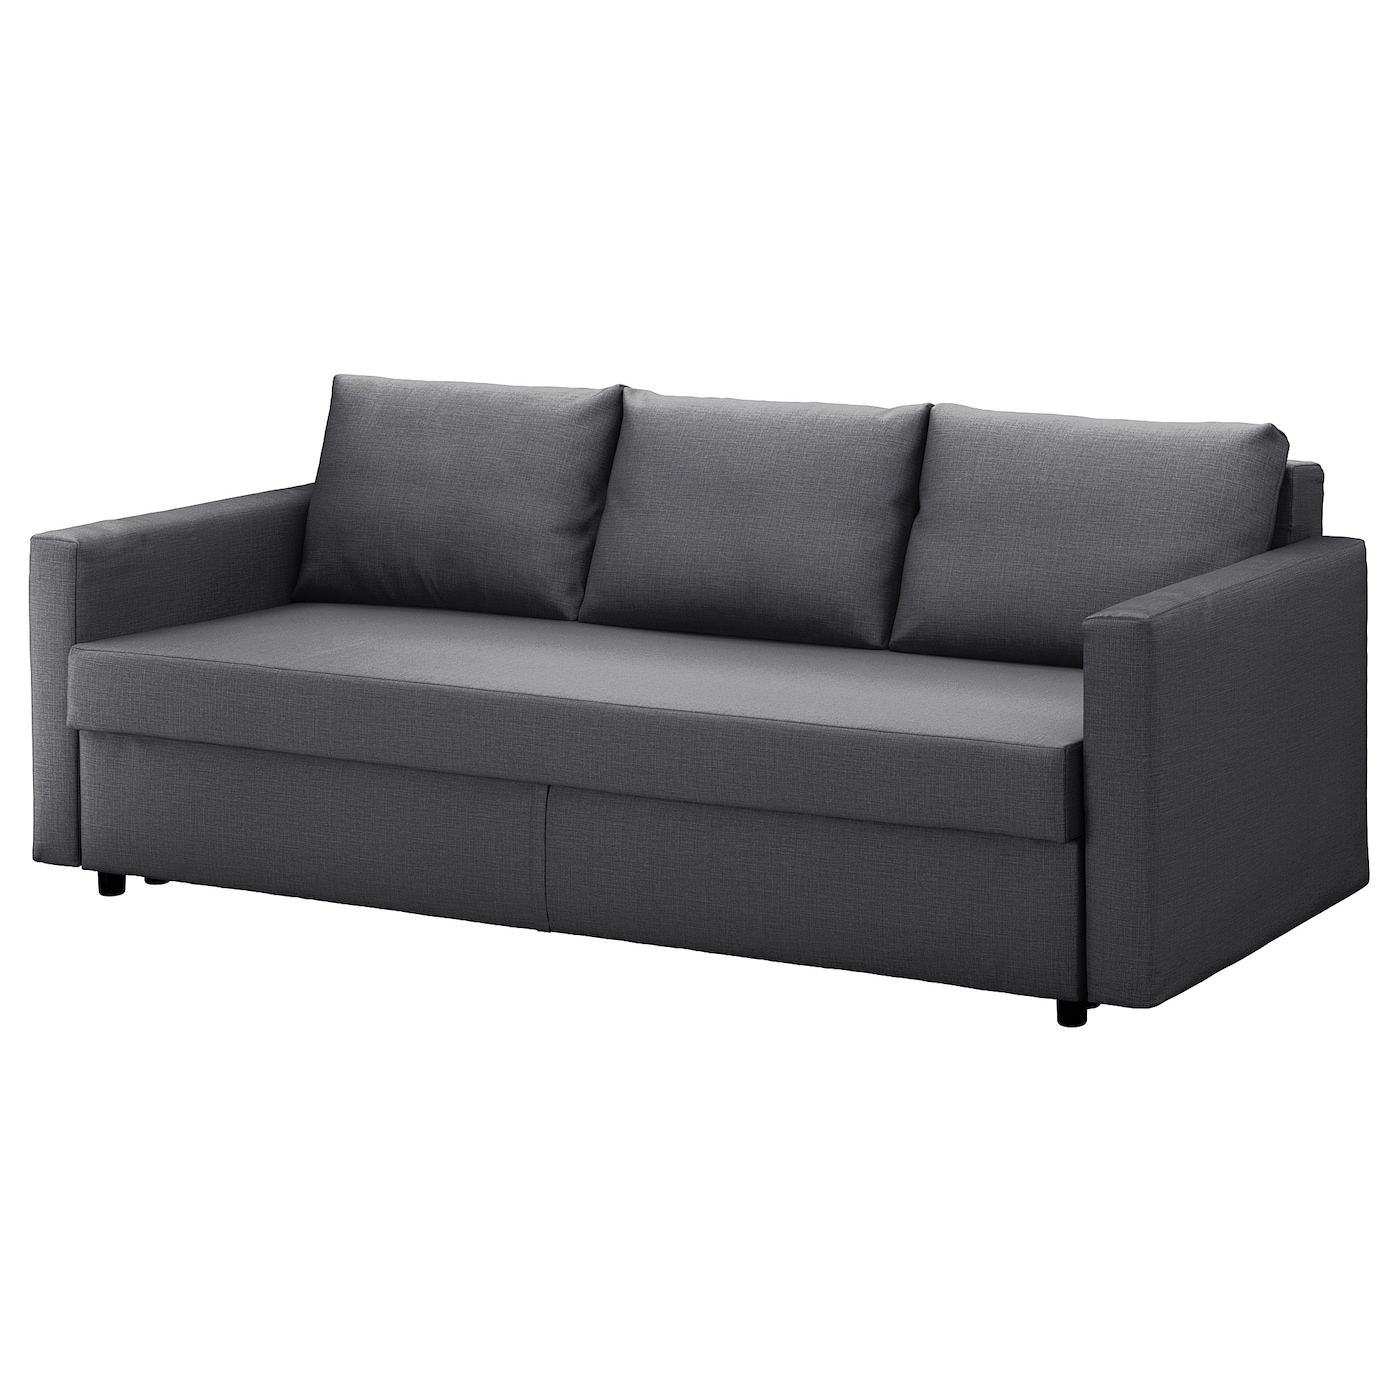 Skiftebo Dark Grey Three Seat Sofa Bed